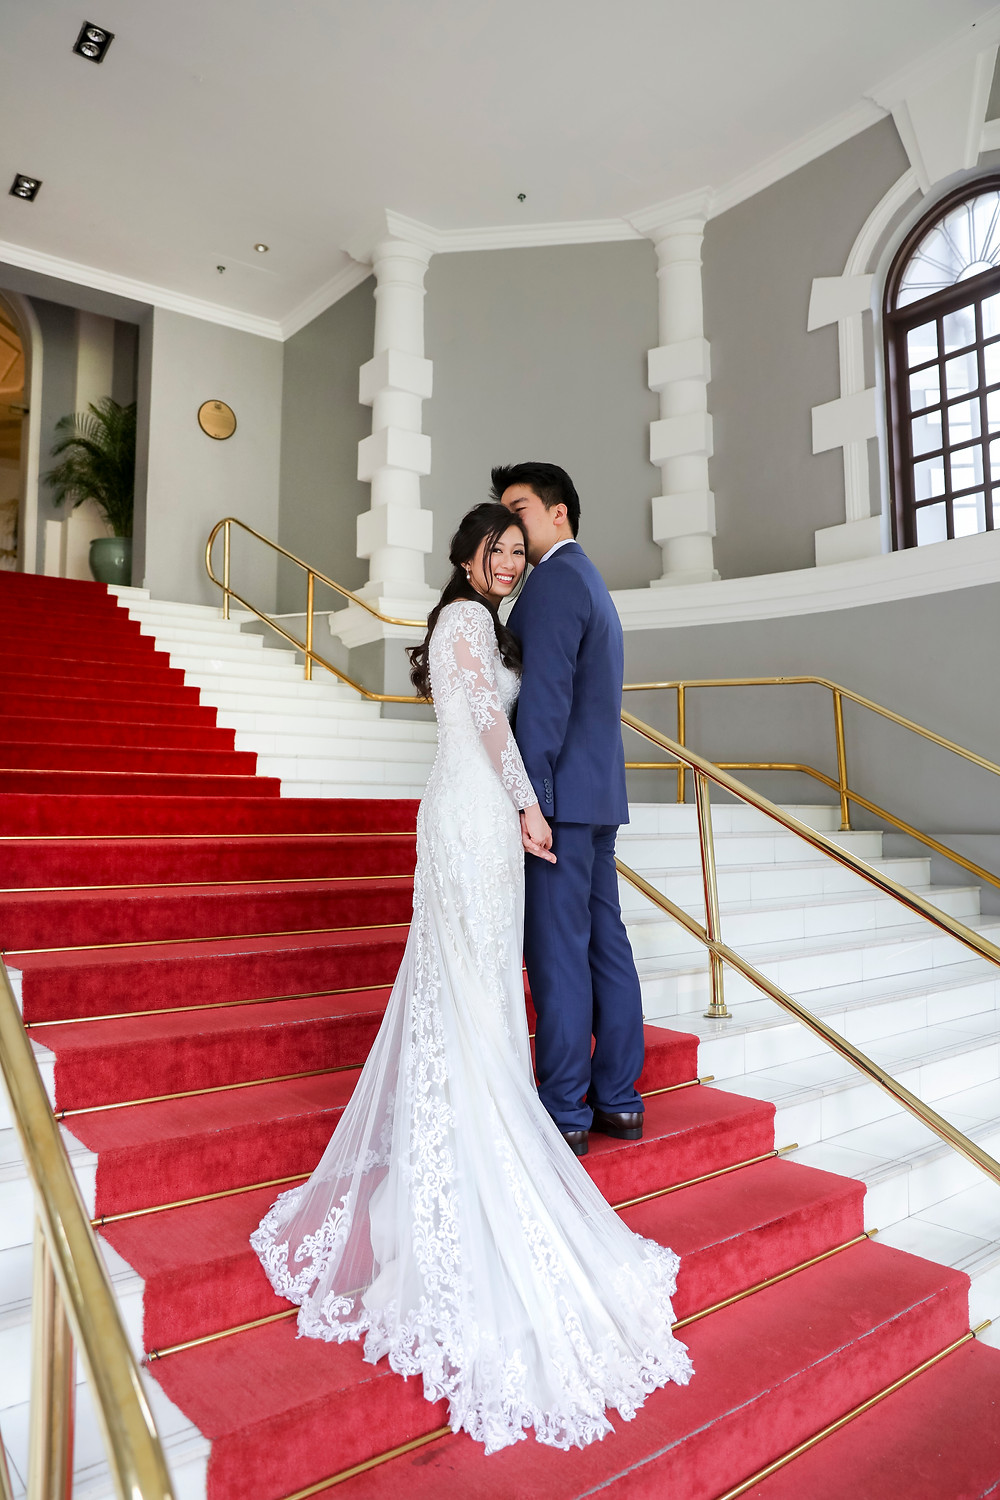 Wedding at Goodwood Park Hotel| Happily Married